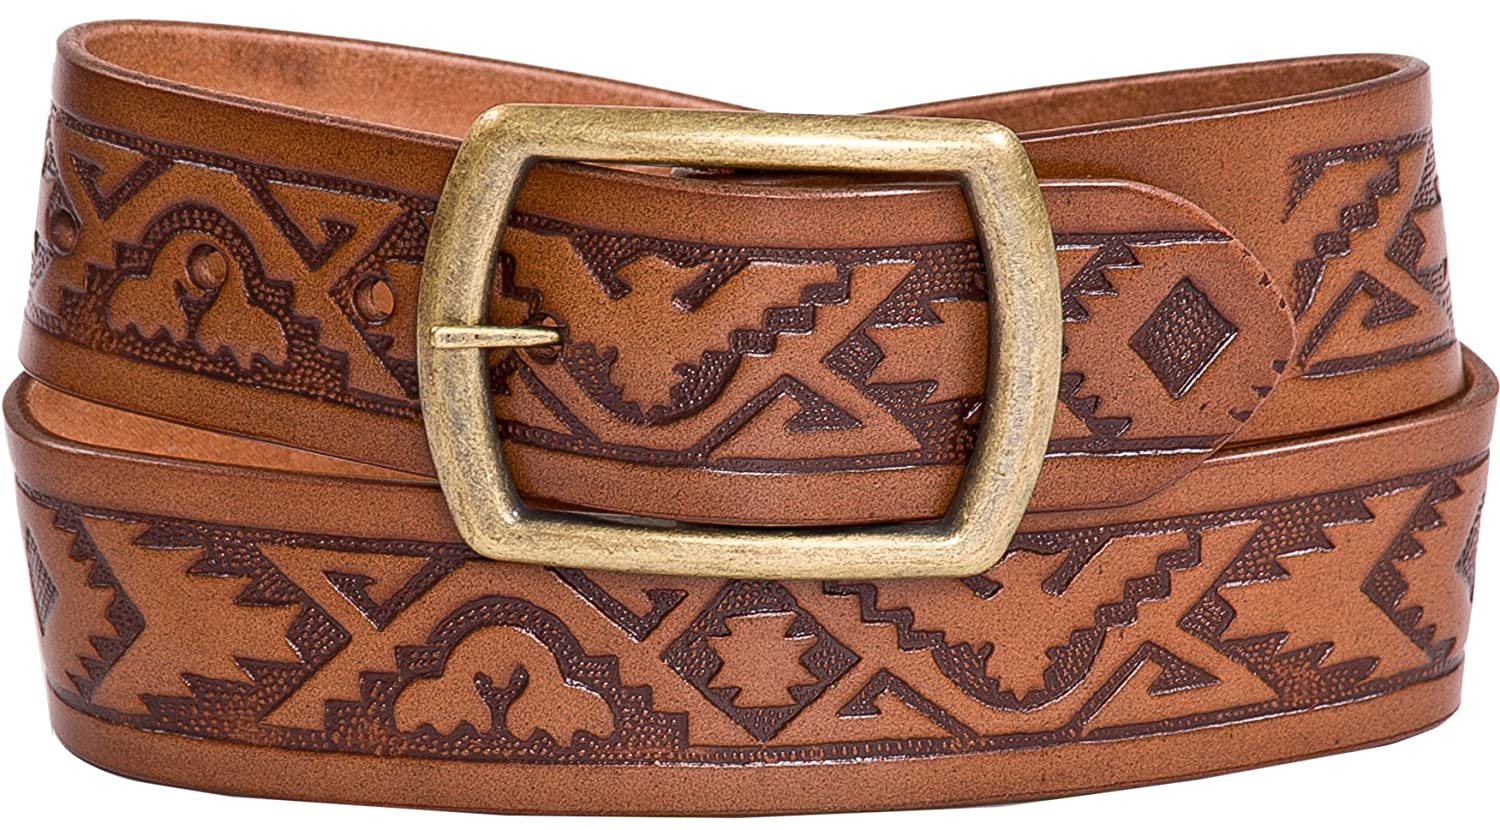 New West Mens Hand Crafted Fine Leather Belt